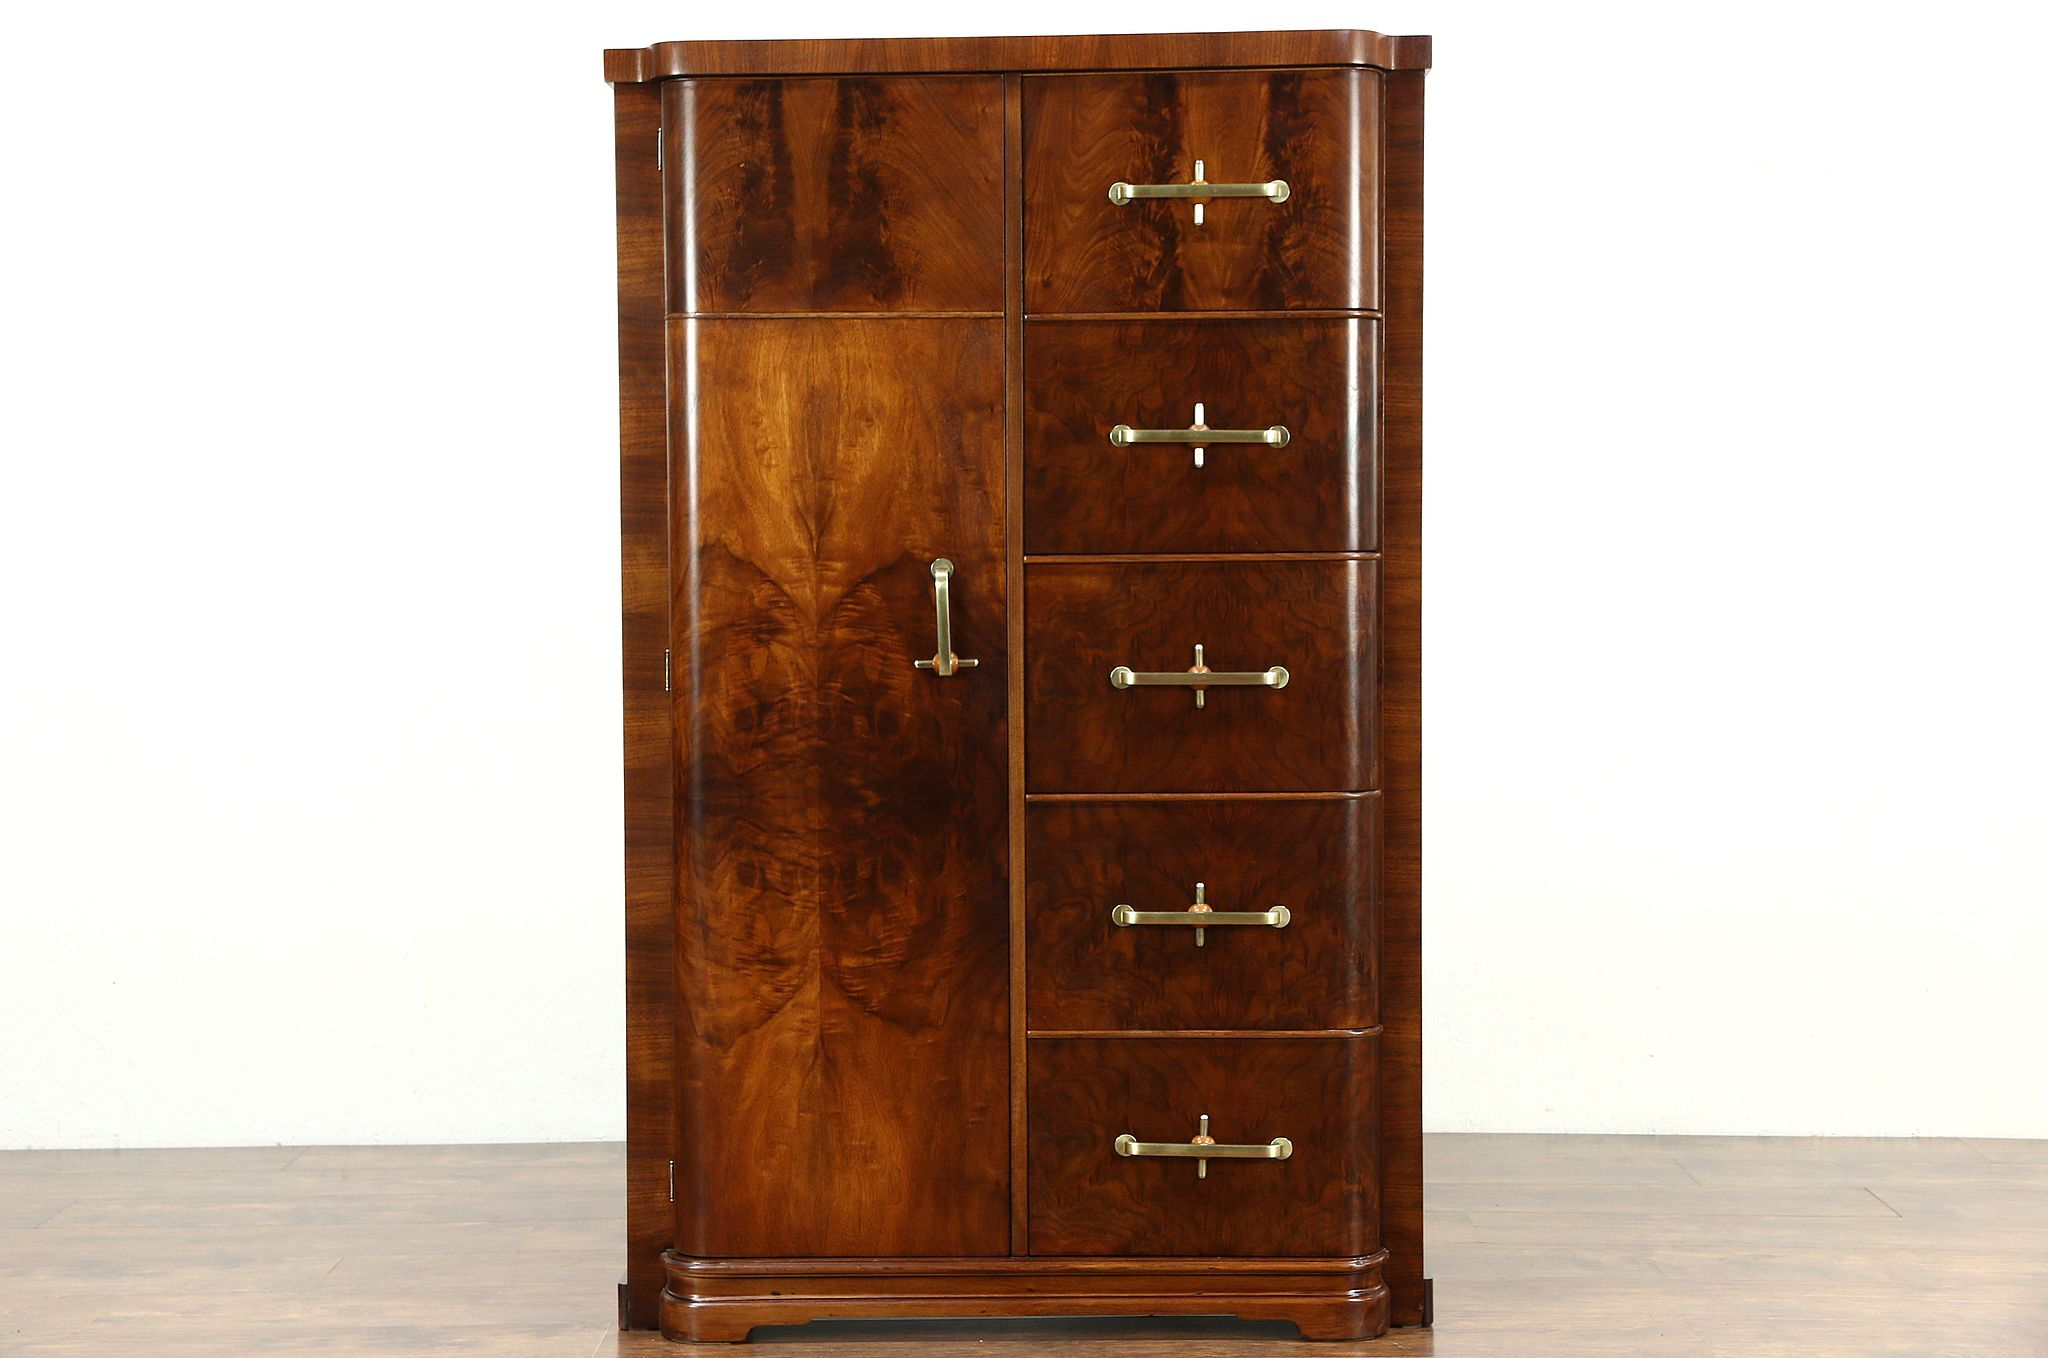 Sold Art Deco Italian 1930 S Vintage Armoire Wardrobe